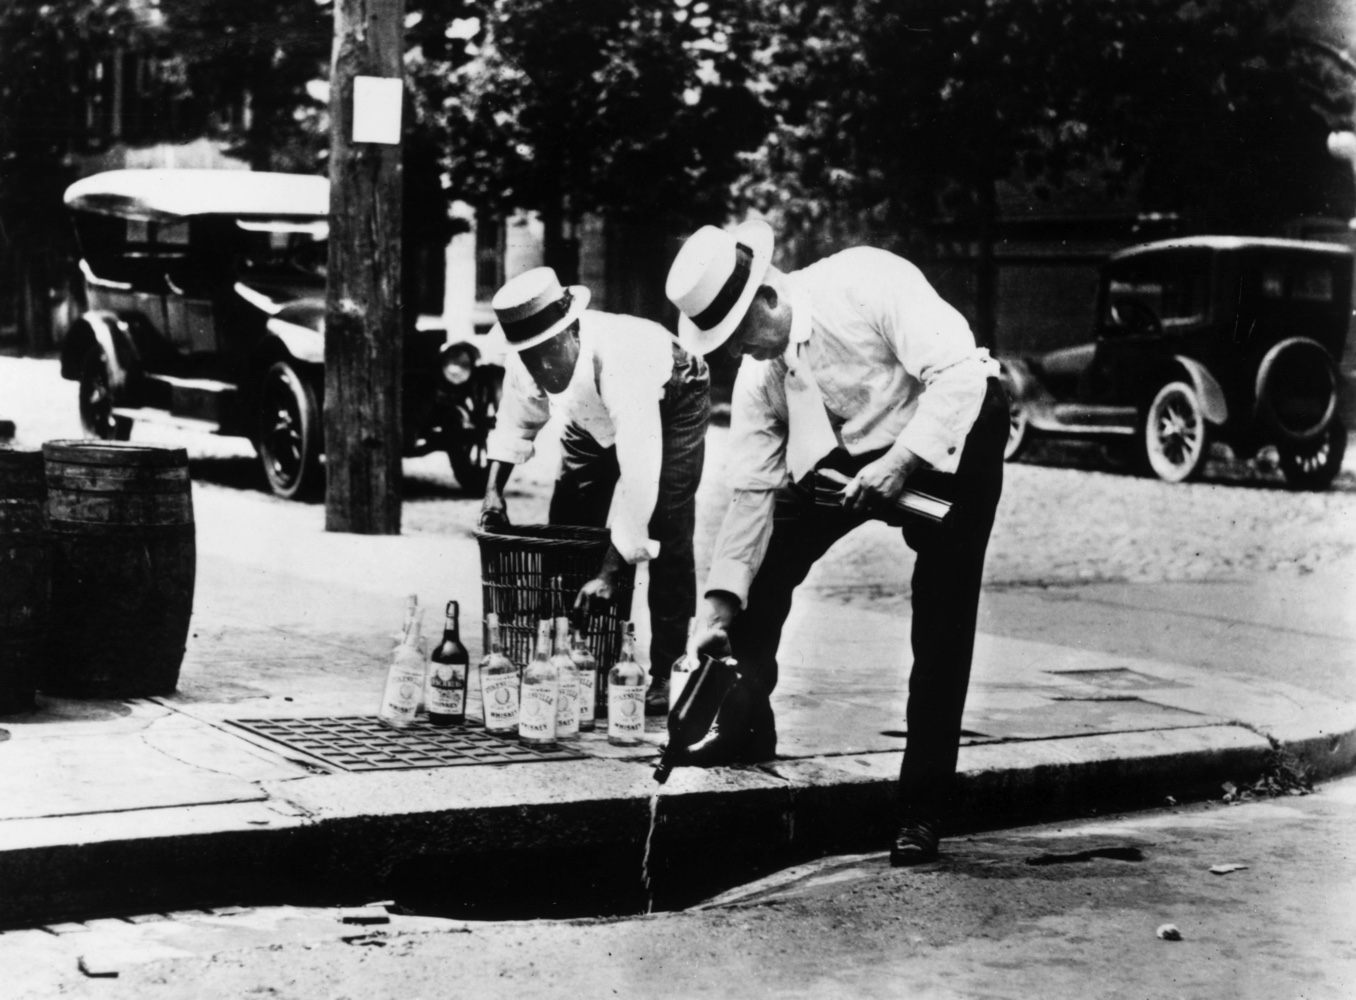 Two men pour alcohol down a drain during prohibition in the United States, c1920.